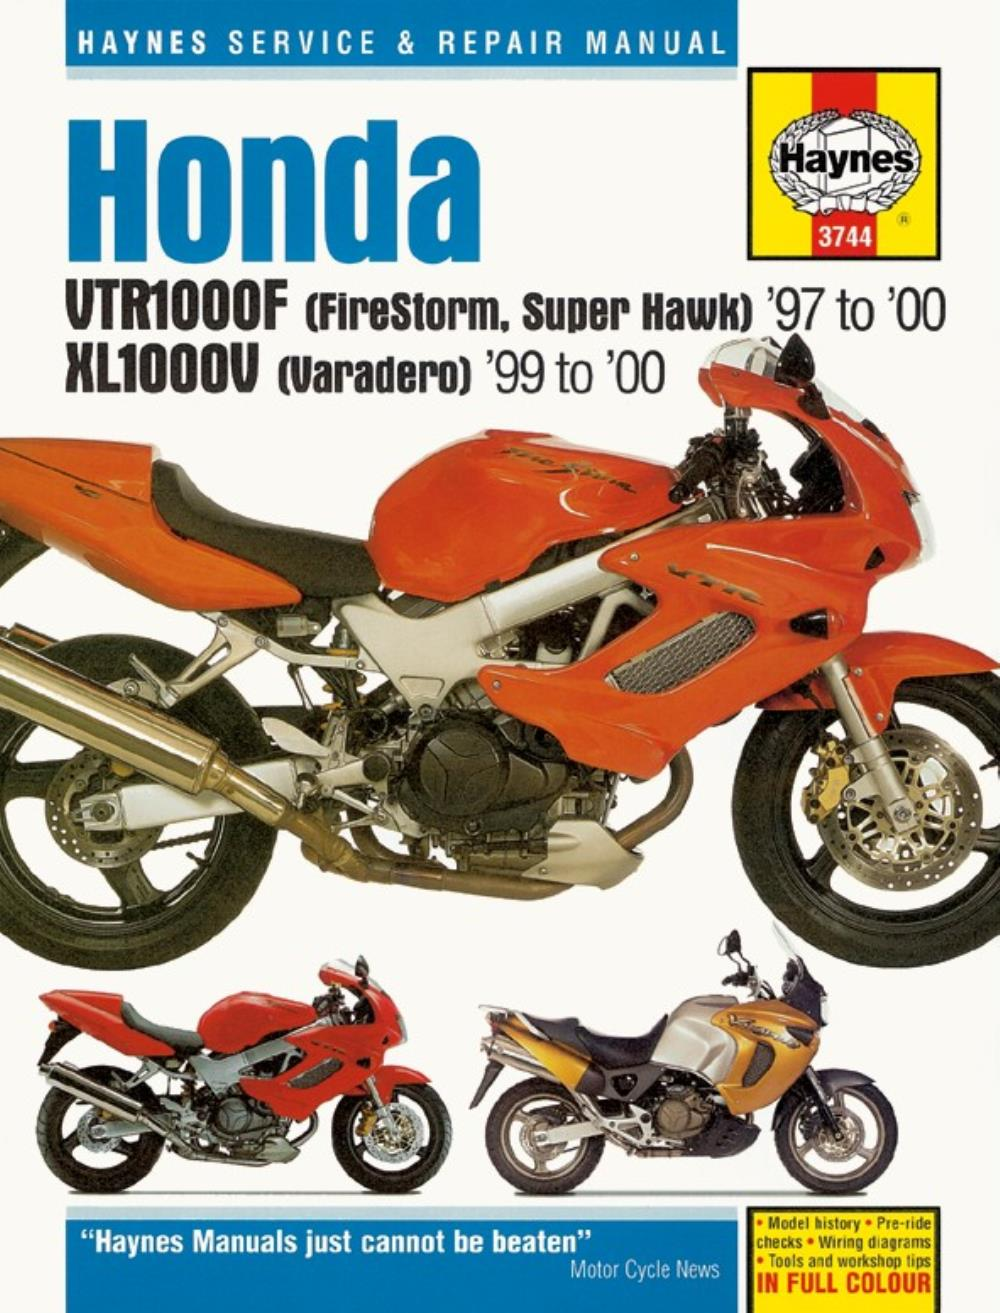 Honda Varadero Wiring Diagram Design Of Electrical Circuit Motor Scooter 2008 Workshop Manual Vtr1000f 1997 2000 Xl1000v 1999 Rh Ebay Co Uk 50cc